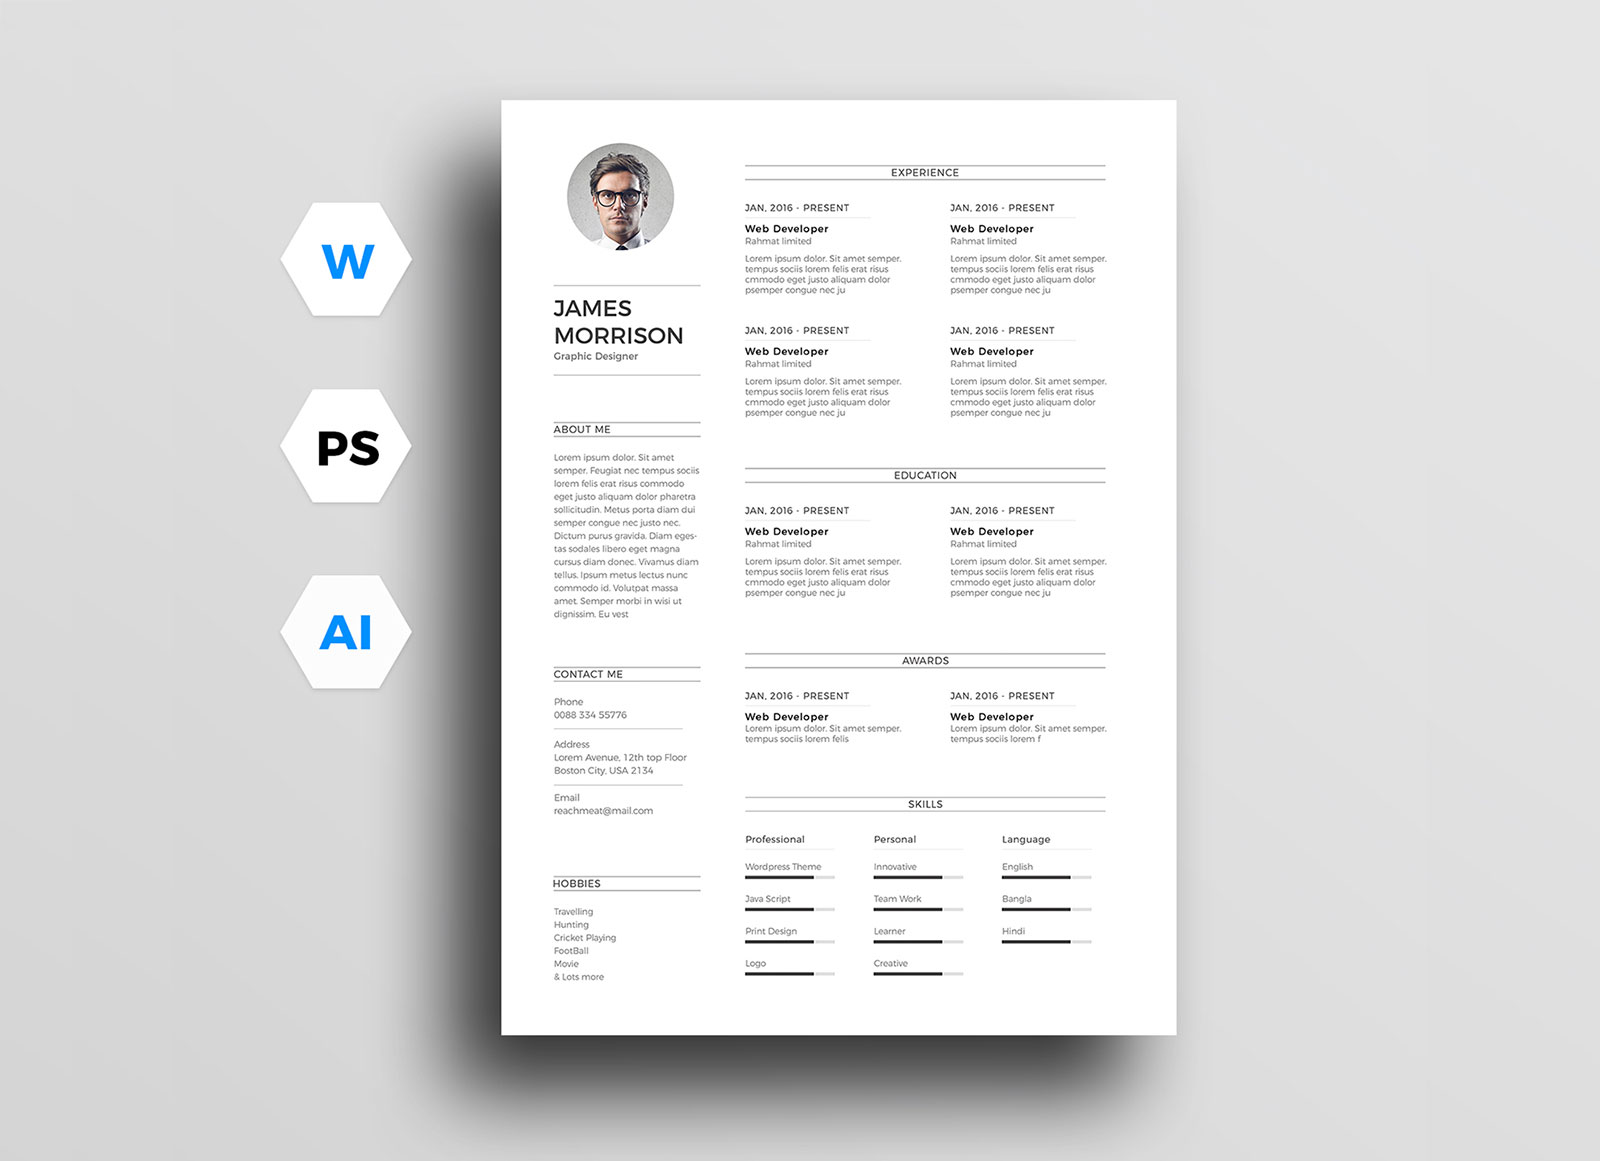 free minimal cv resume template in word good minimalist data analyst summary software for Resume Minimalist Resume Template Free Word